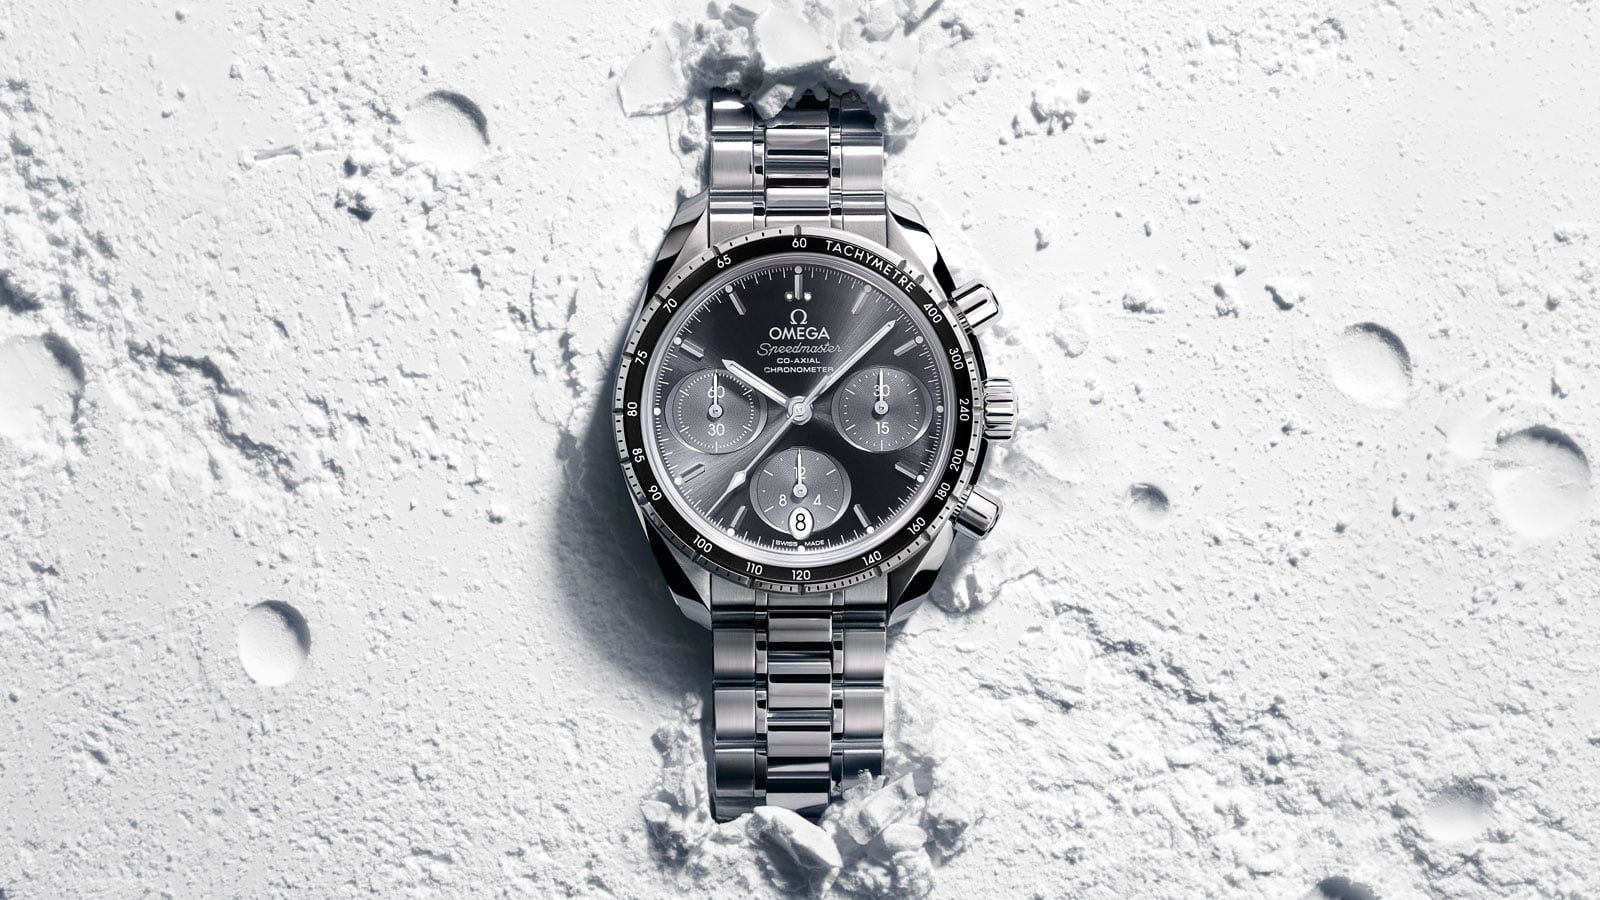 Contextual view of a Speedmaster 38mm watch with a white dial and stainless steel bracelet placed in sand